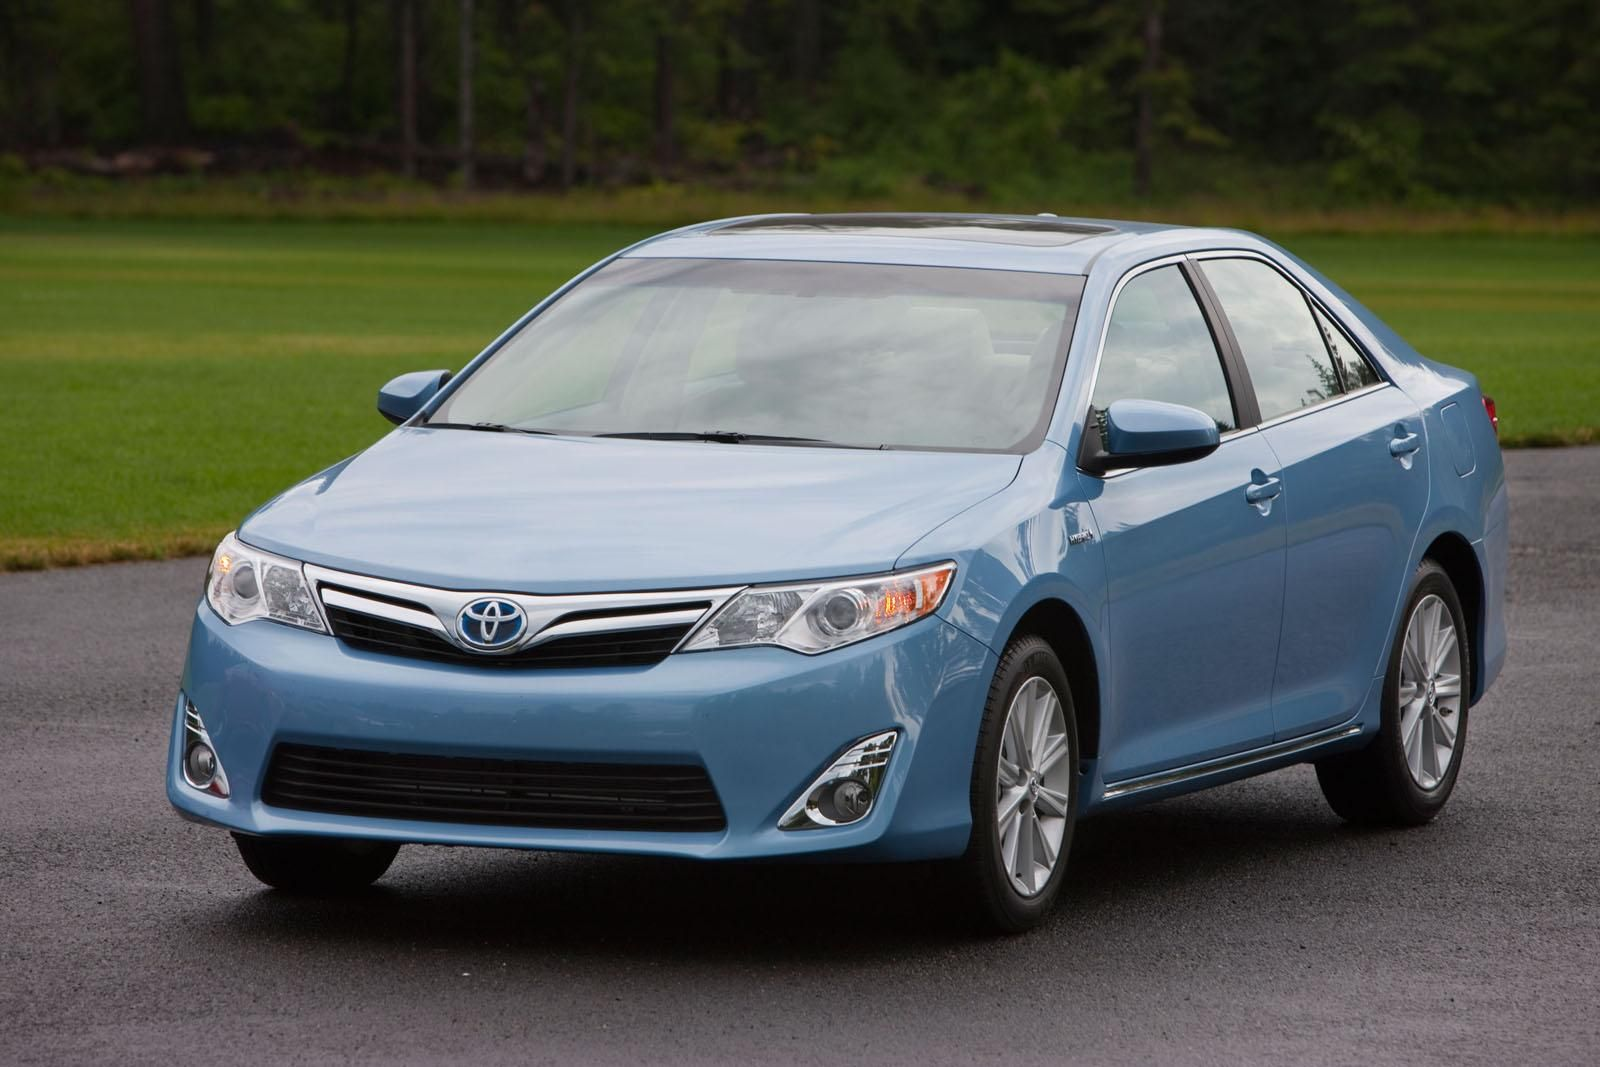 2015 toyota camry gets sharper steering new looks 2015 toyota camry toyota camry and toyota